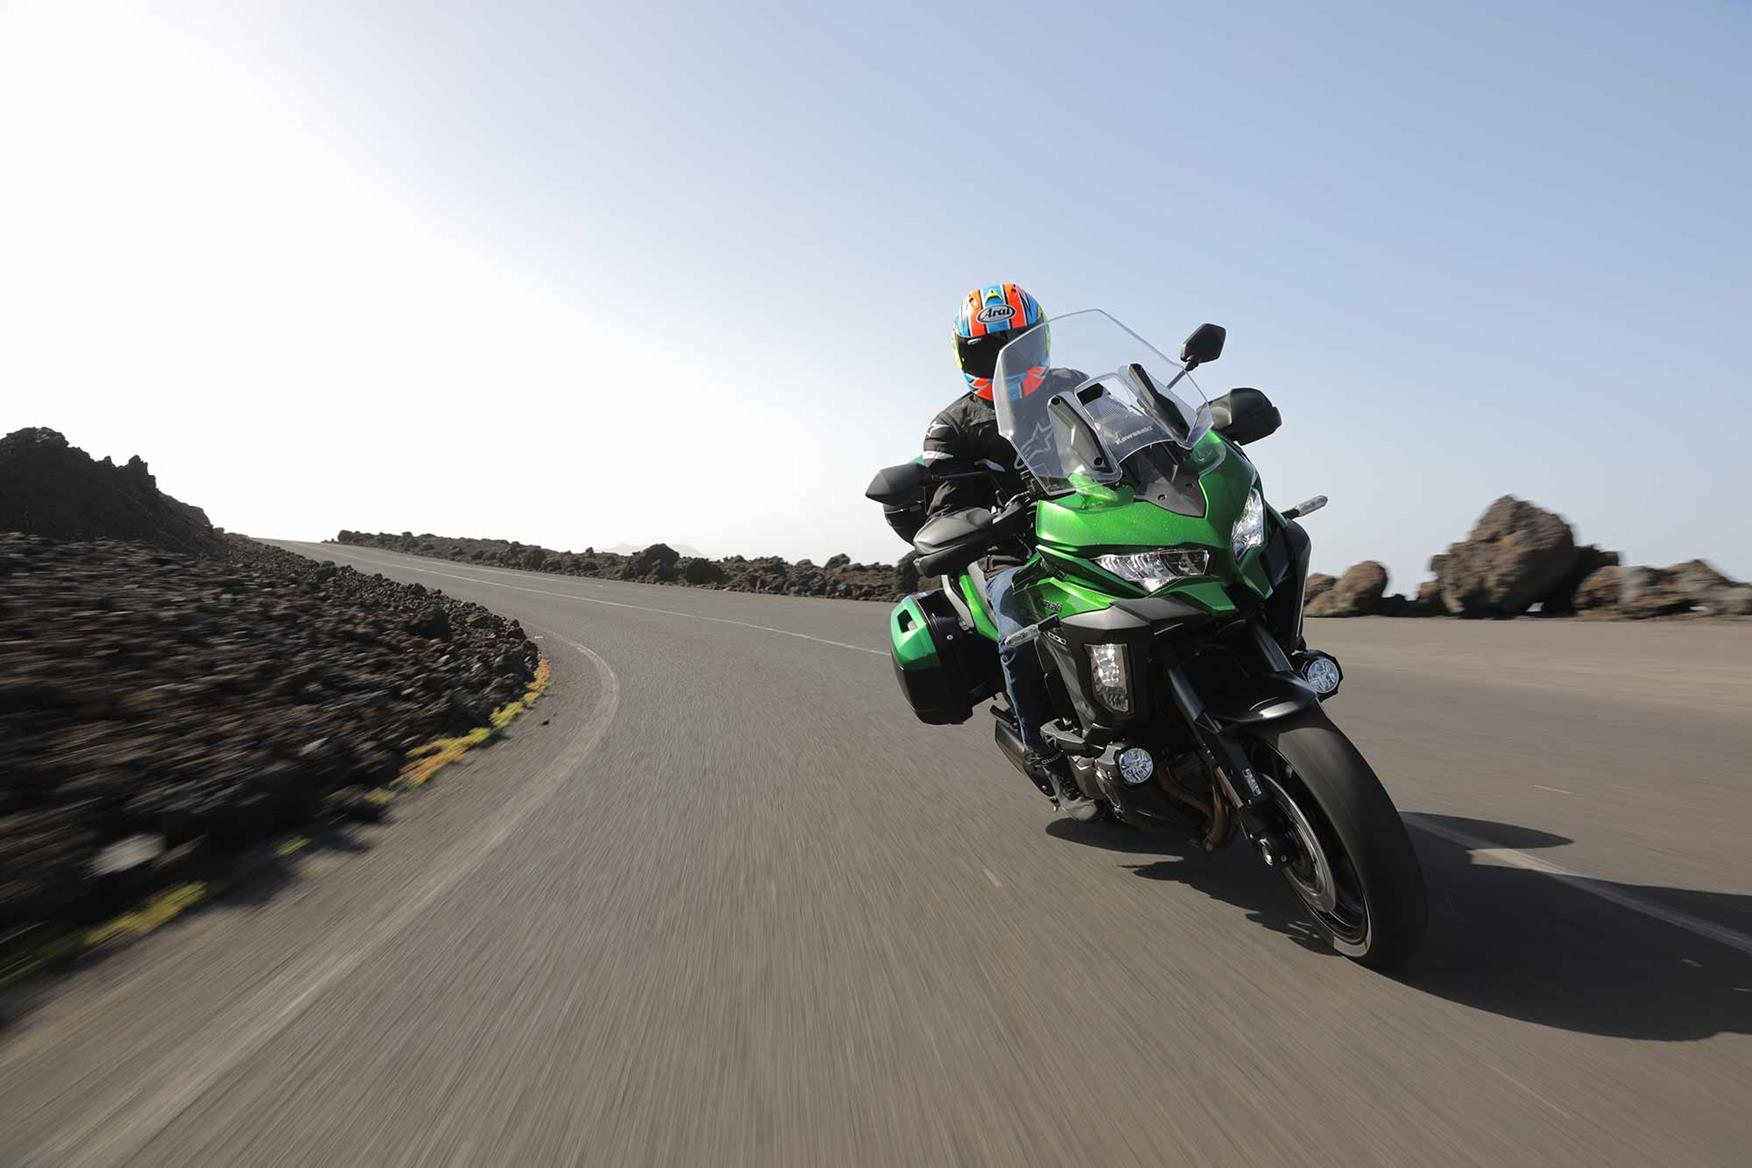 In action on the Kawasaki Versys 1000 SE